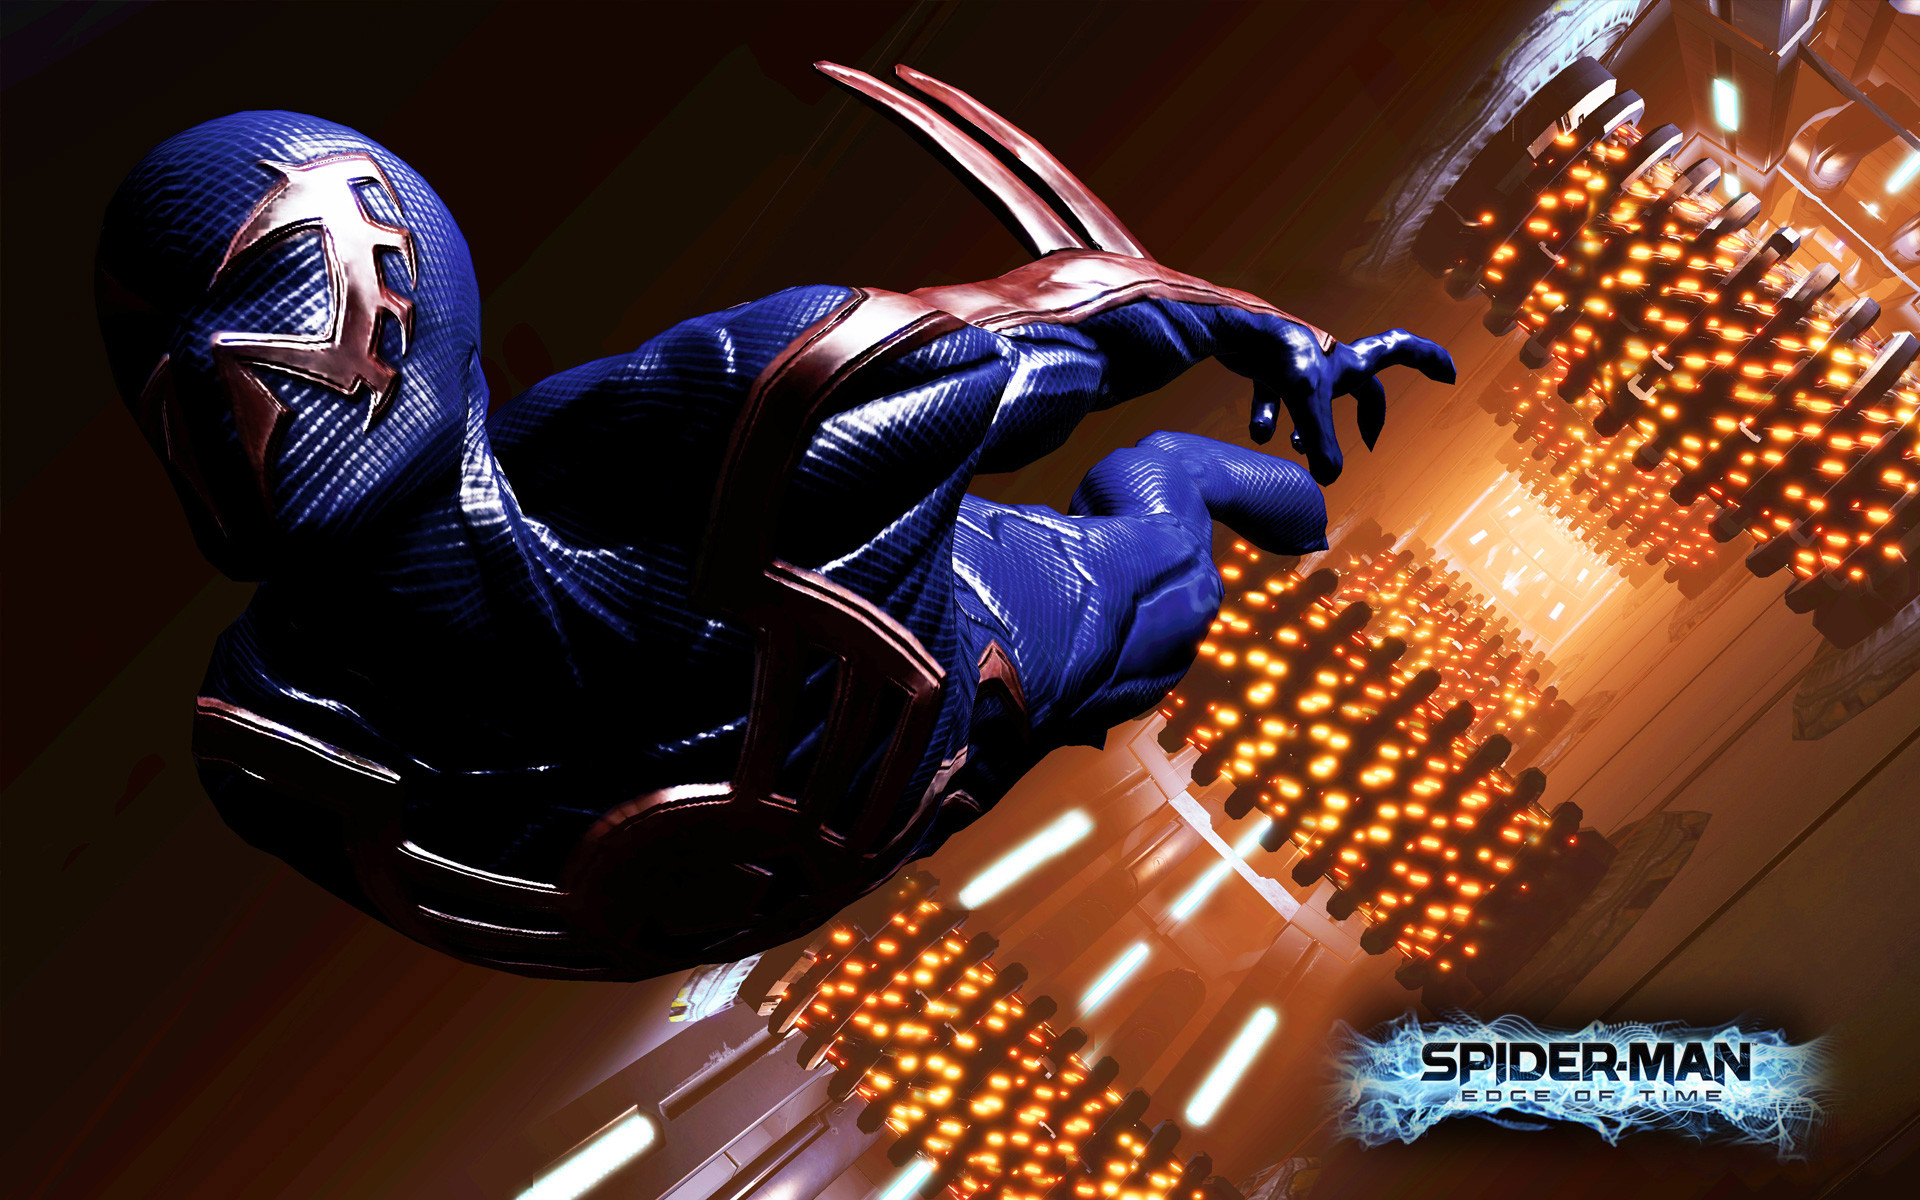 Spider Man 2099 Wallpaper 1080p: Iron Spider HD Wallpaper (77+ Images